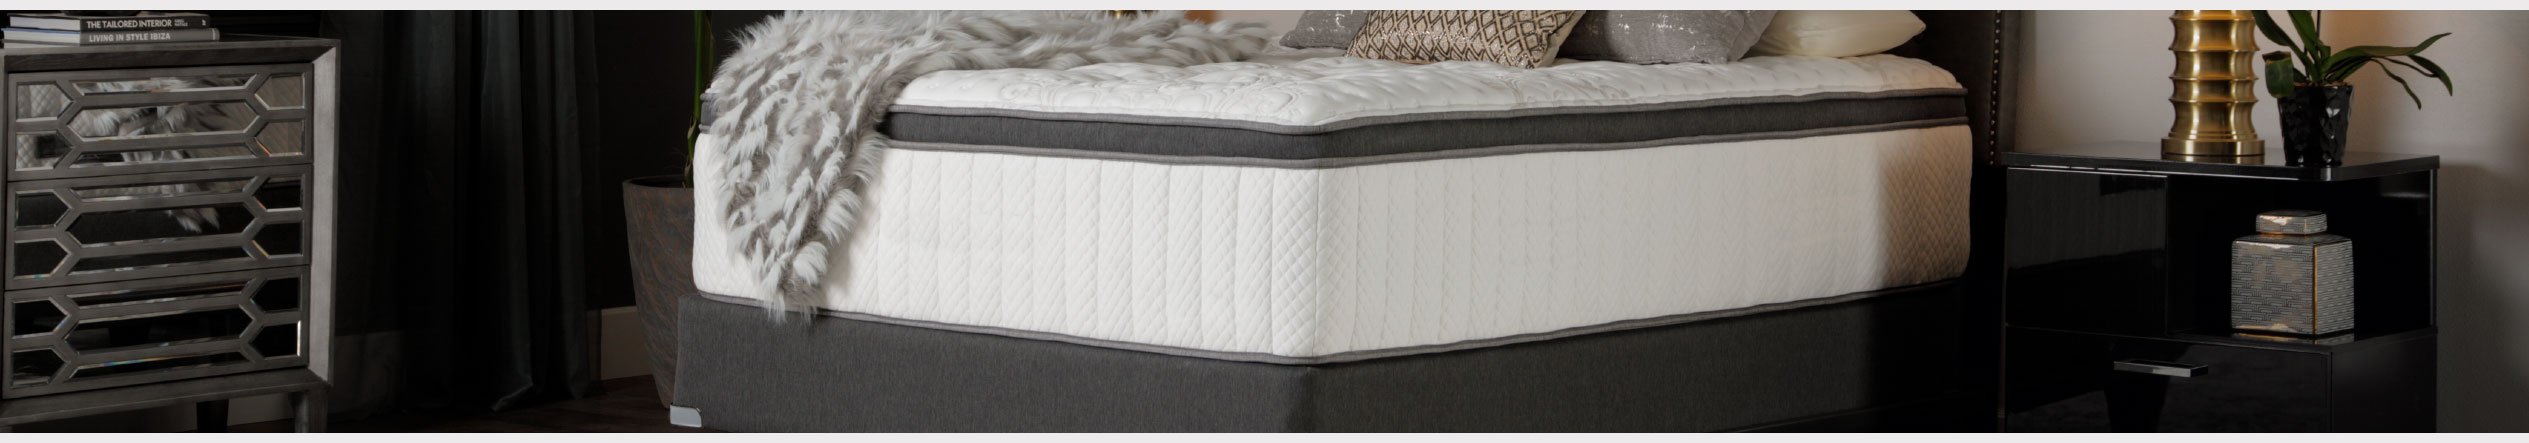 Sleep Accessories and Mattresses for sale at Jordan's Furniture stores in MA, NH and RI